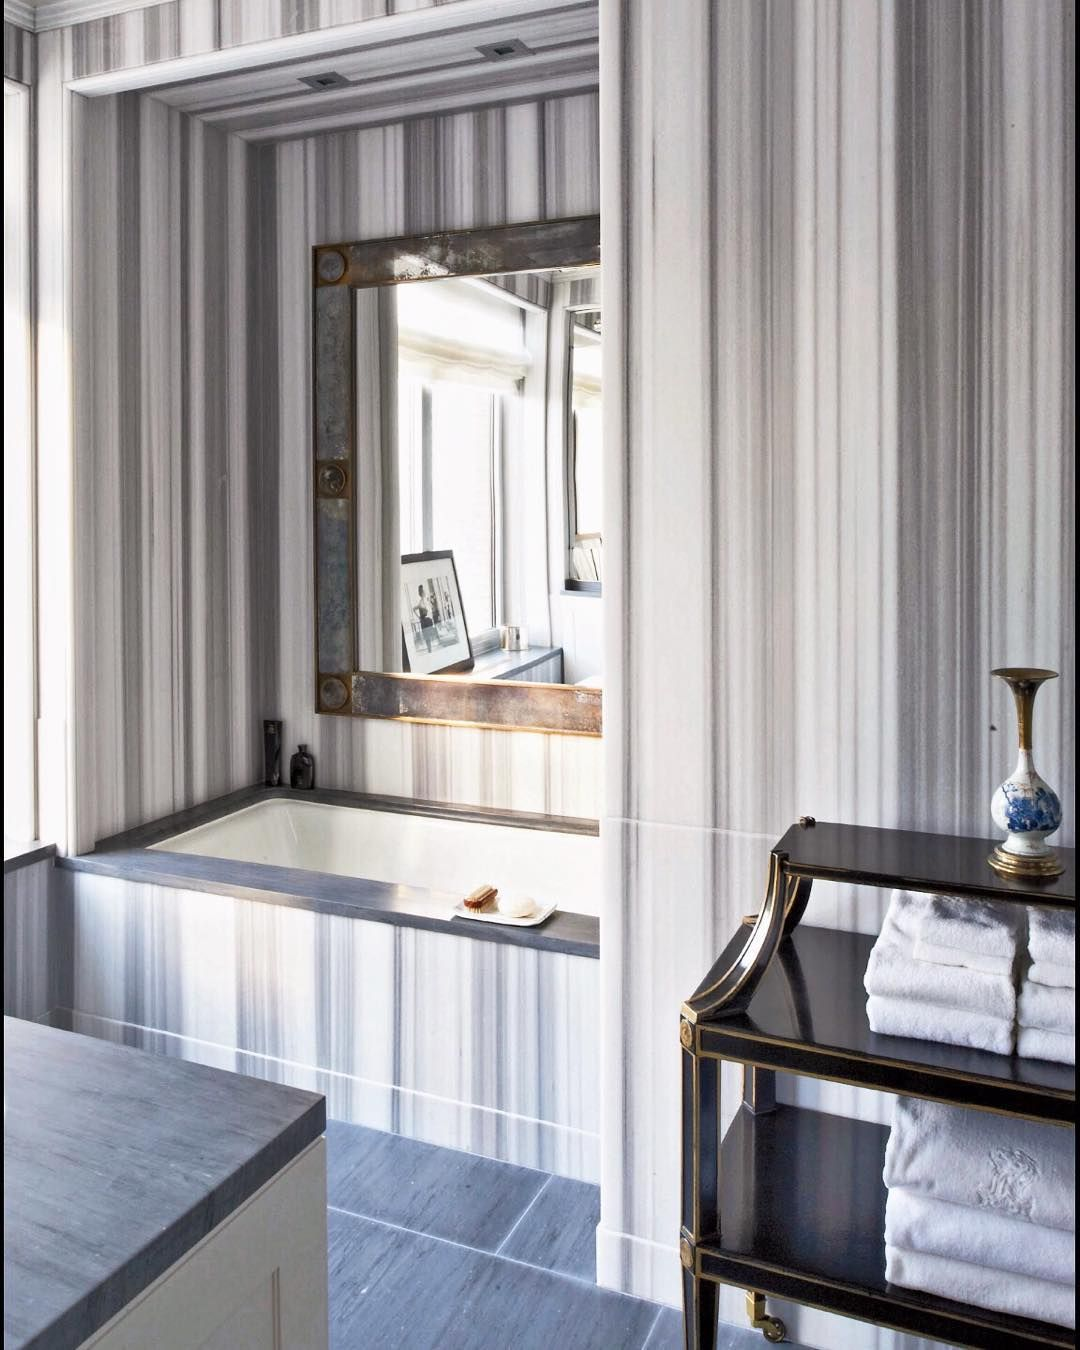 It's Friday! Time to wash off the week and enjoy the weekend. And if we could wash off the week in this Asher Grey bath that'd be even better.